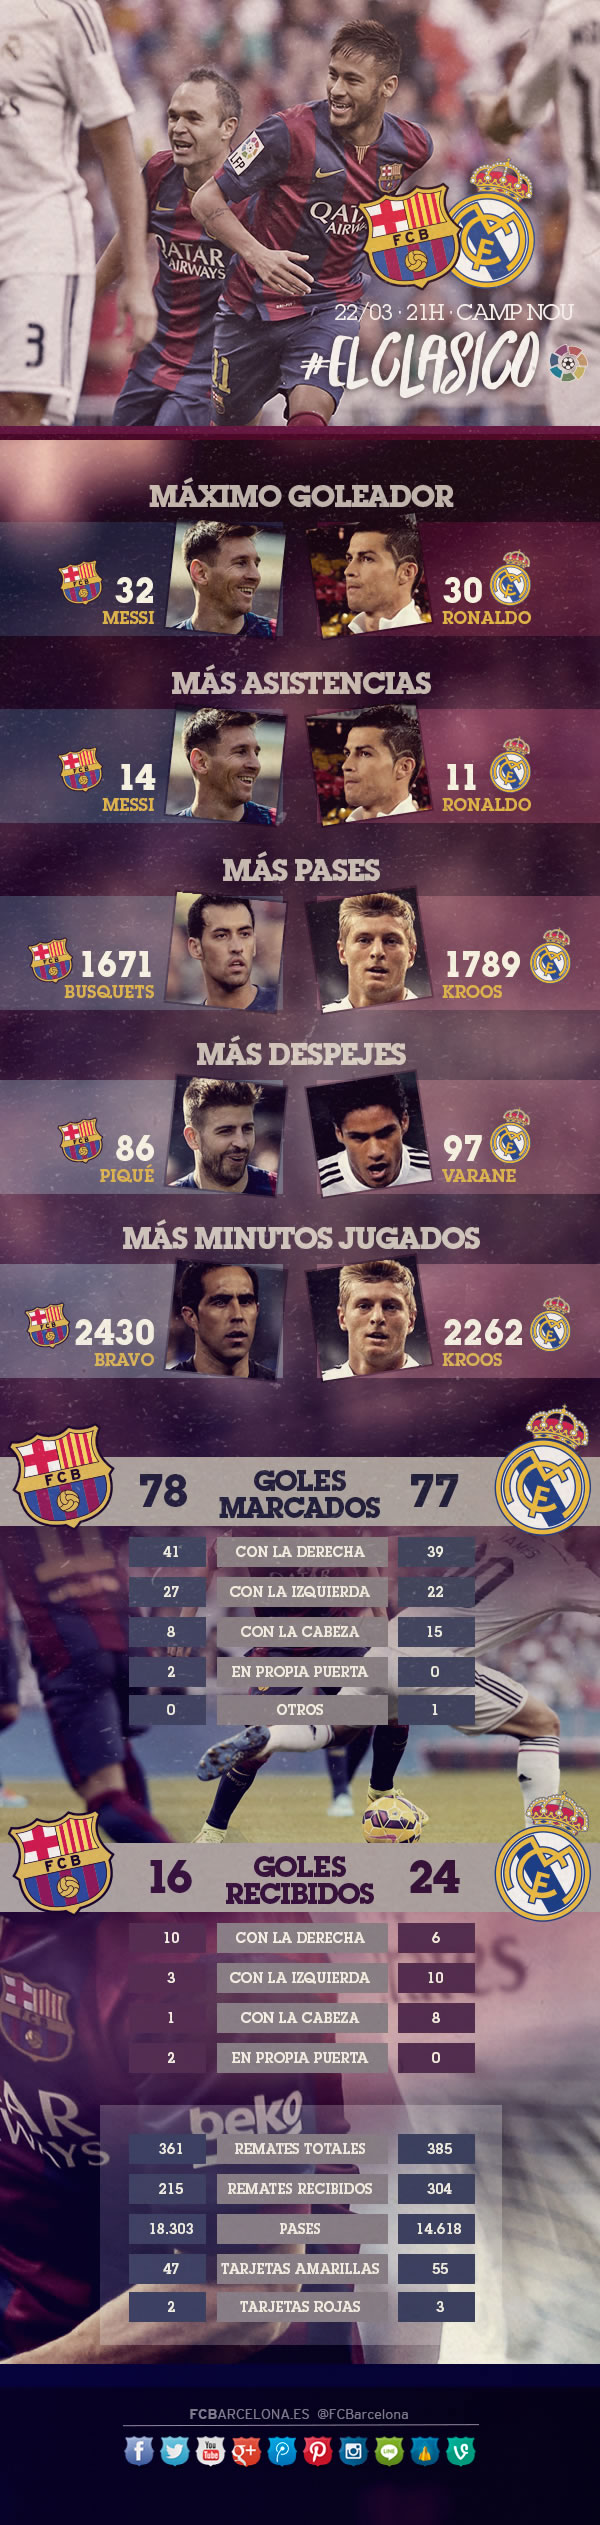 Barcelona vs Real Madrid y sus números esta temporada - Barcelona-vs-Real-Madrid-2015-numeros